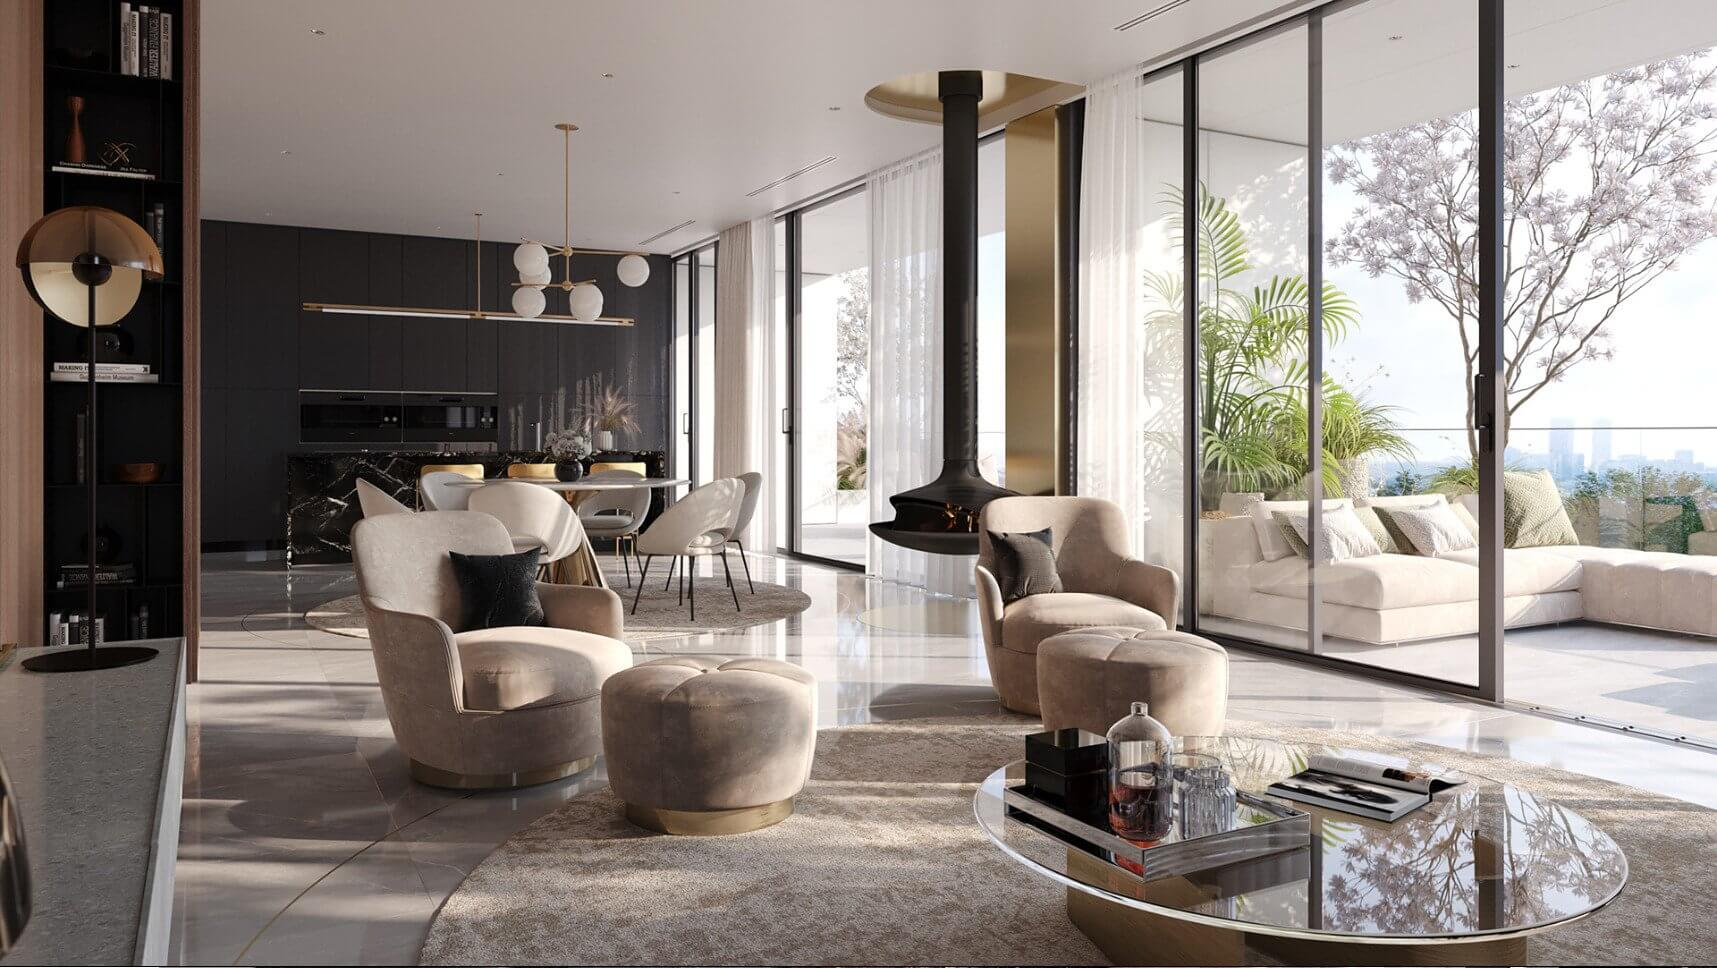 Luxurious and stylish penthouse design - cgi visualization 5